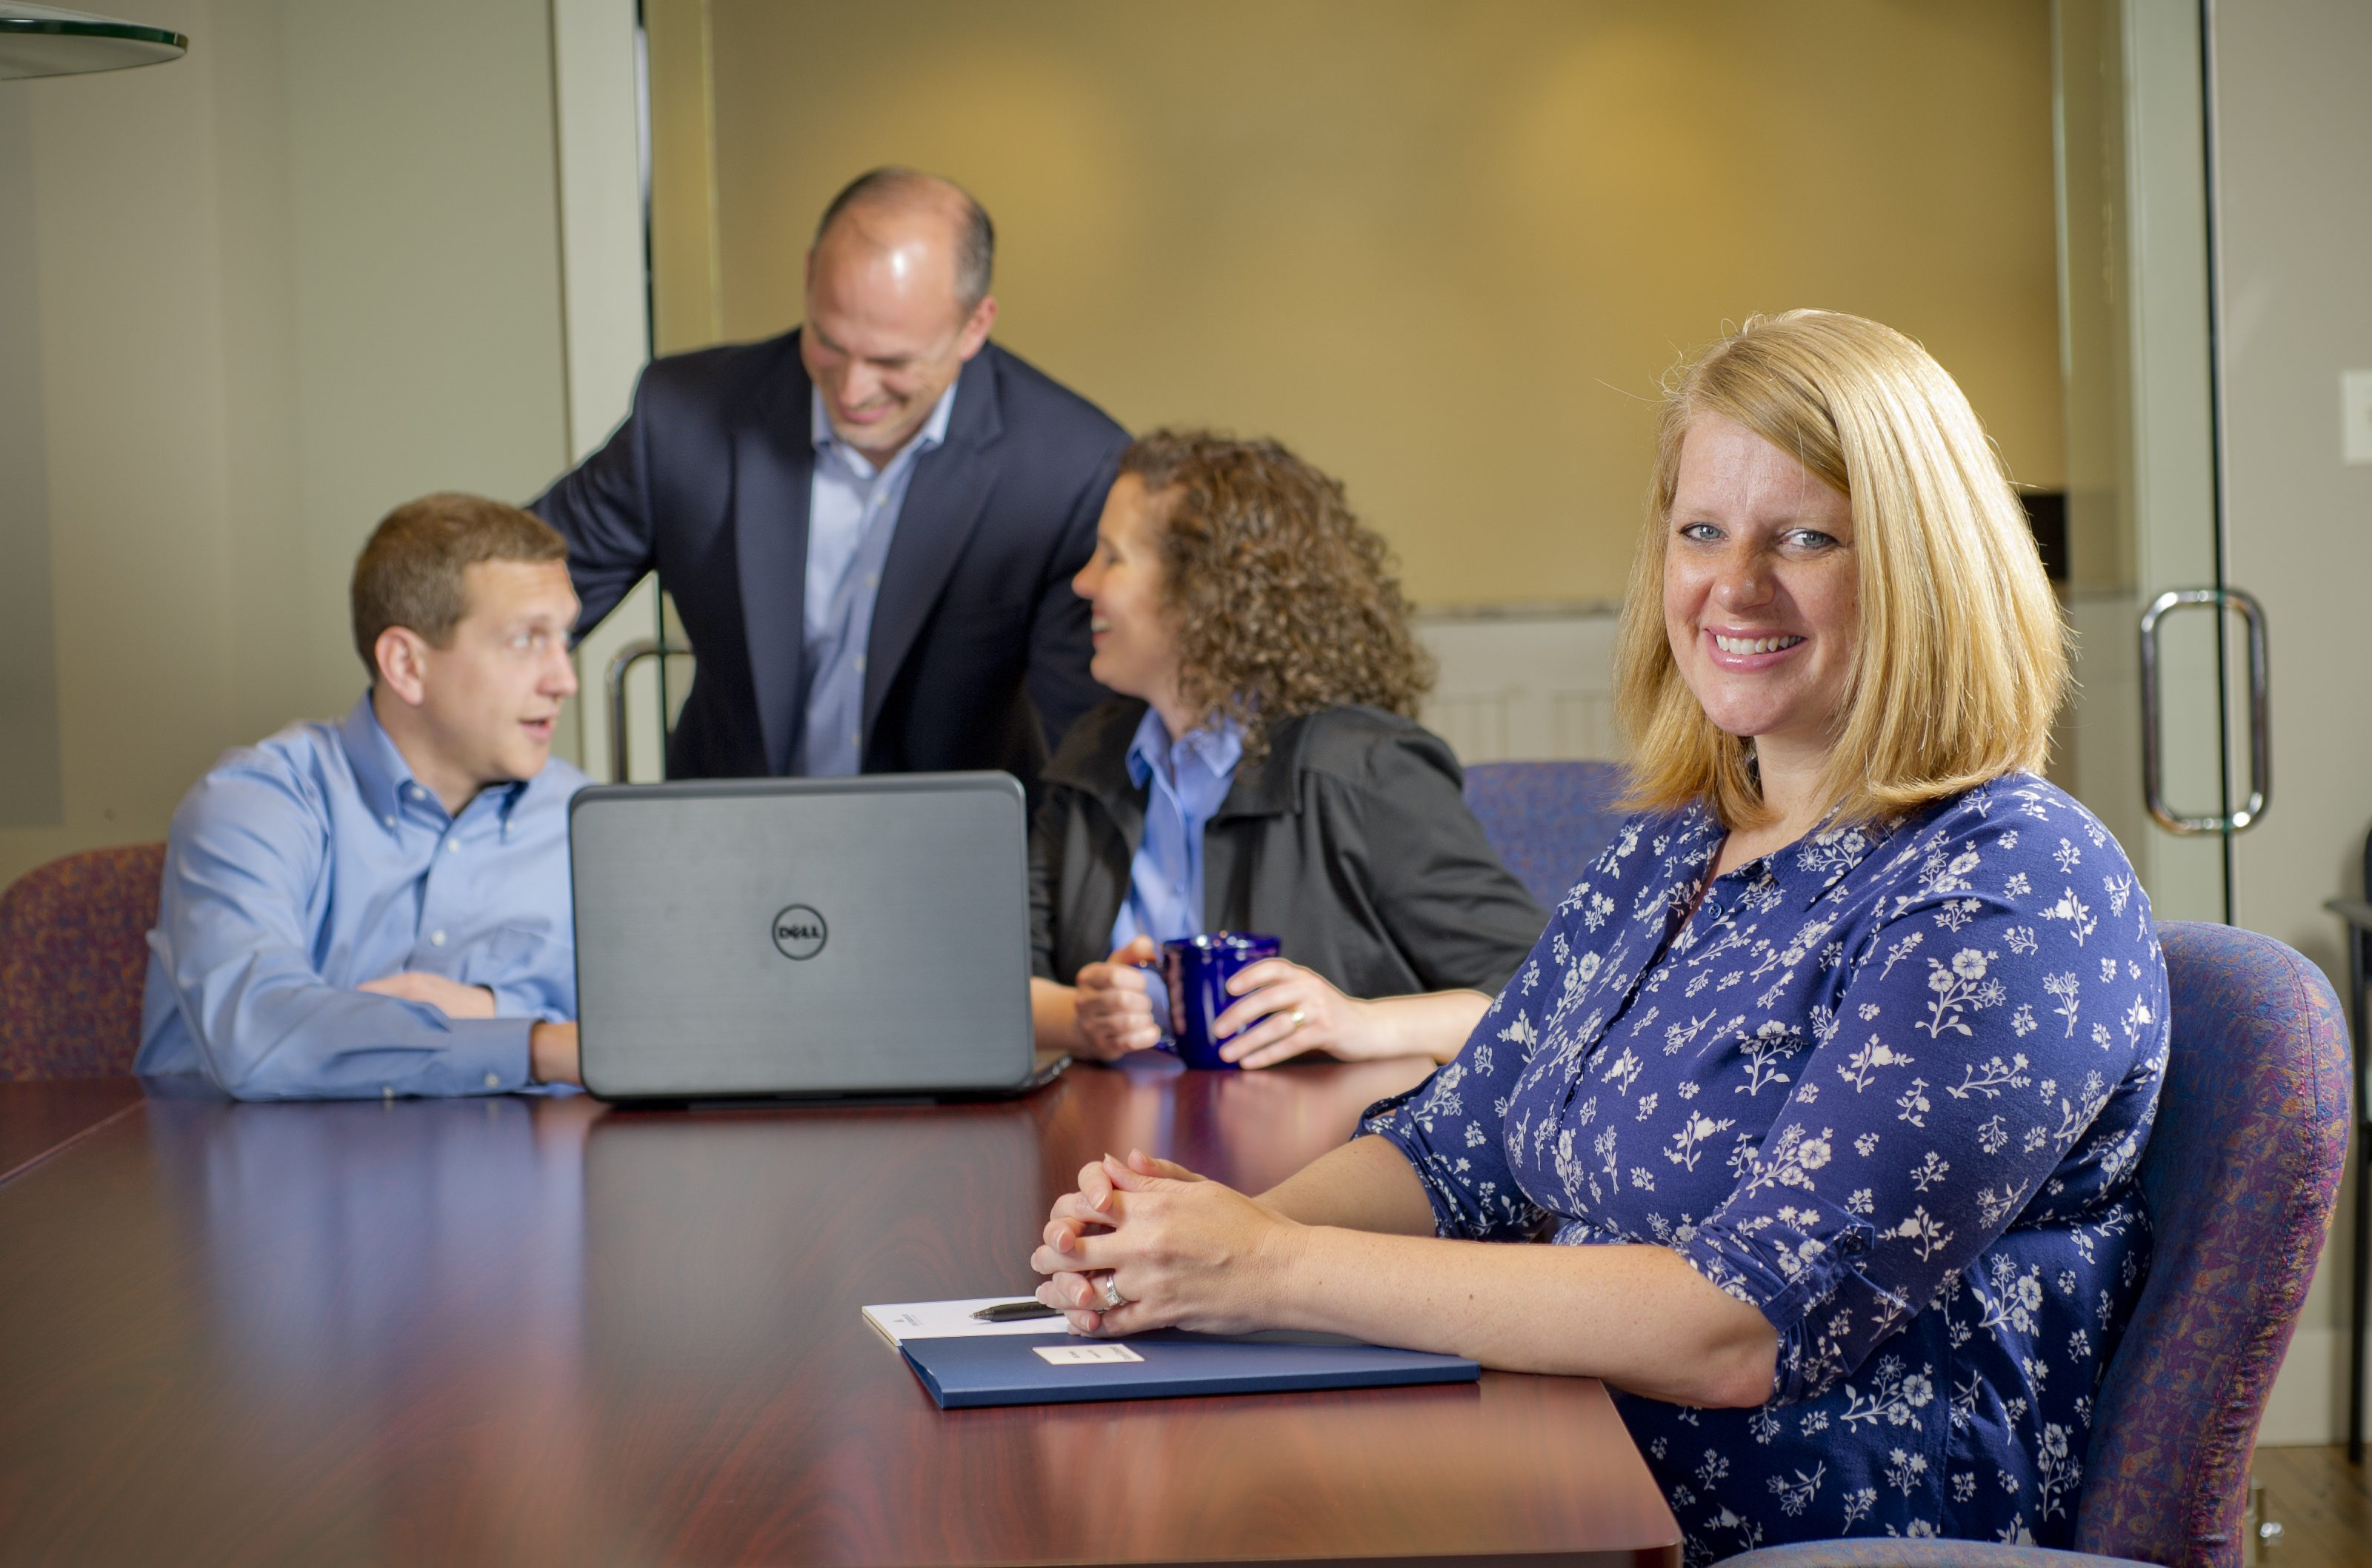 Our team works together to serve clients well.